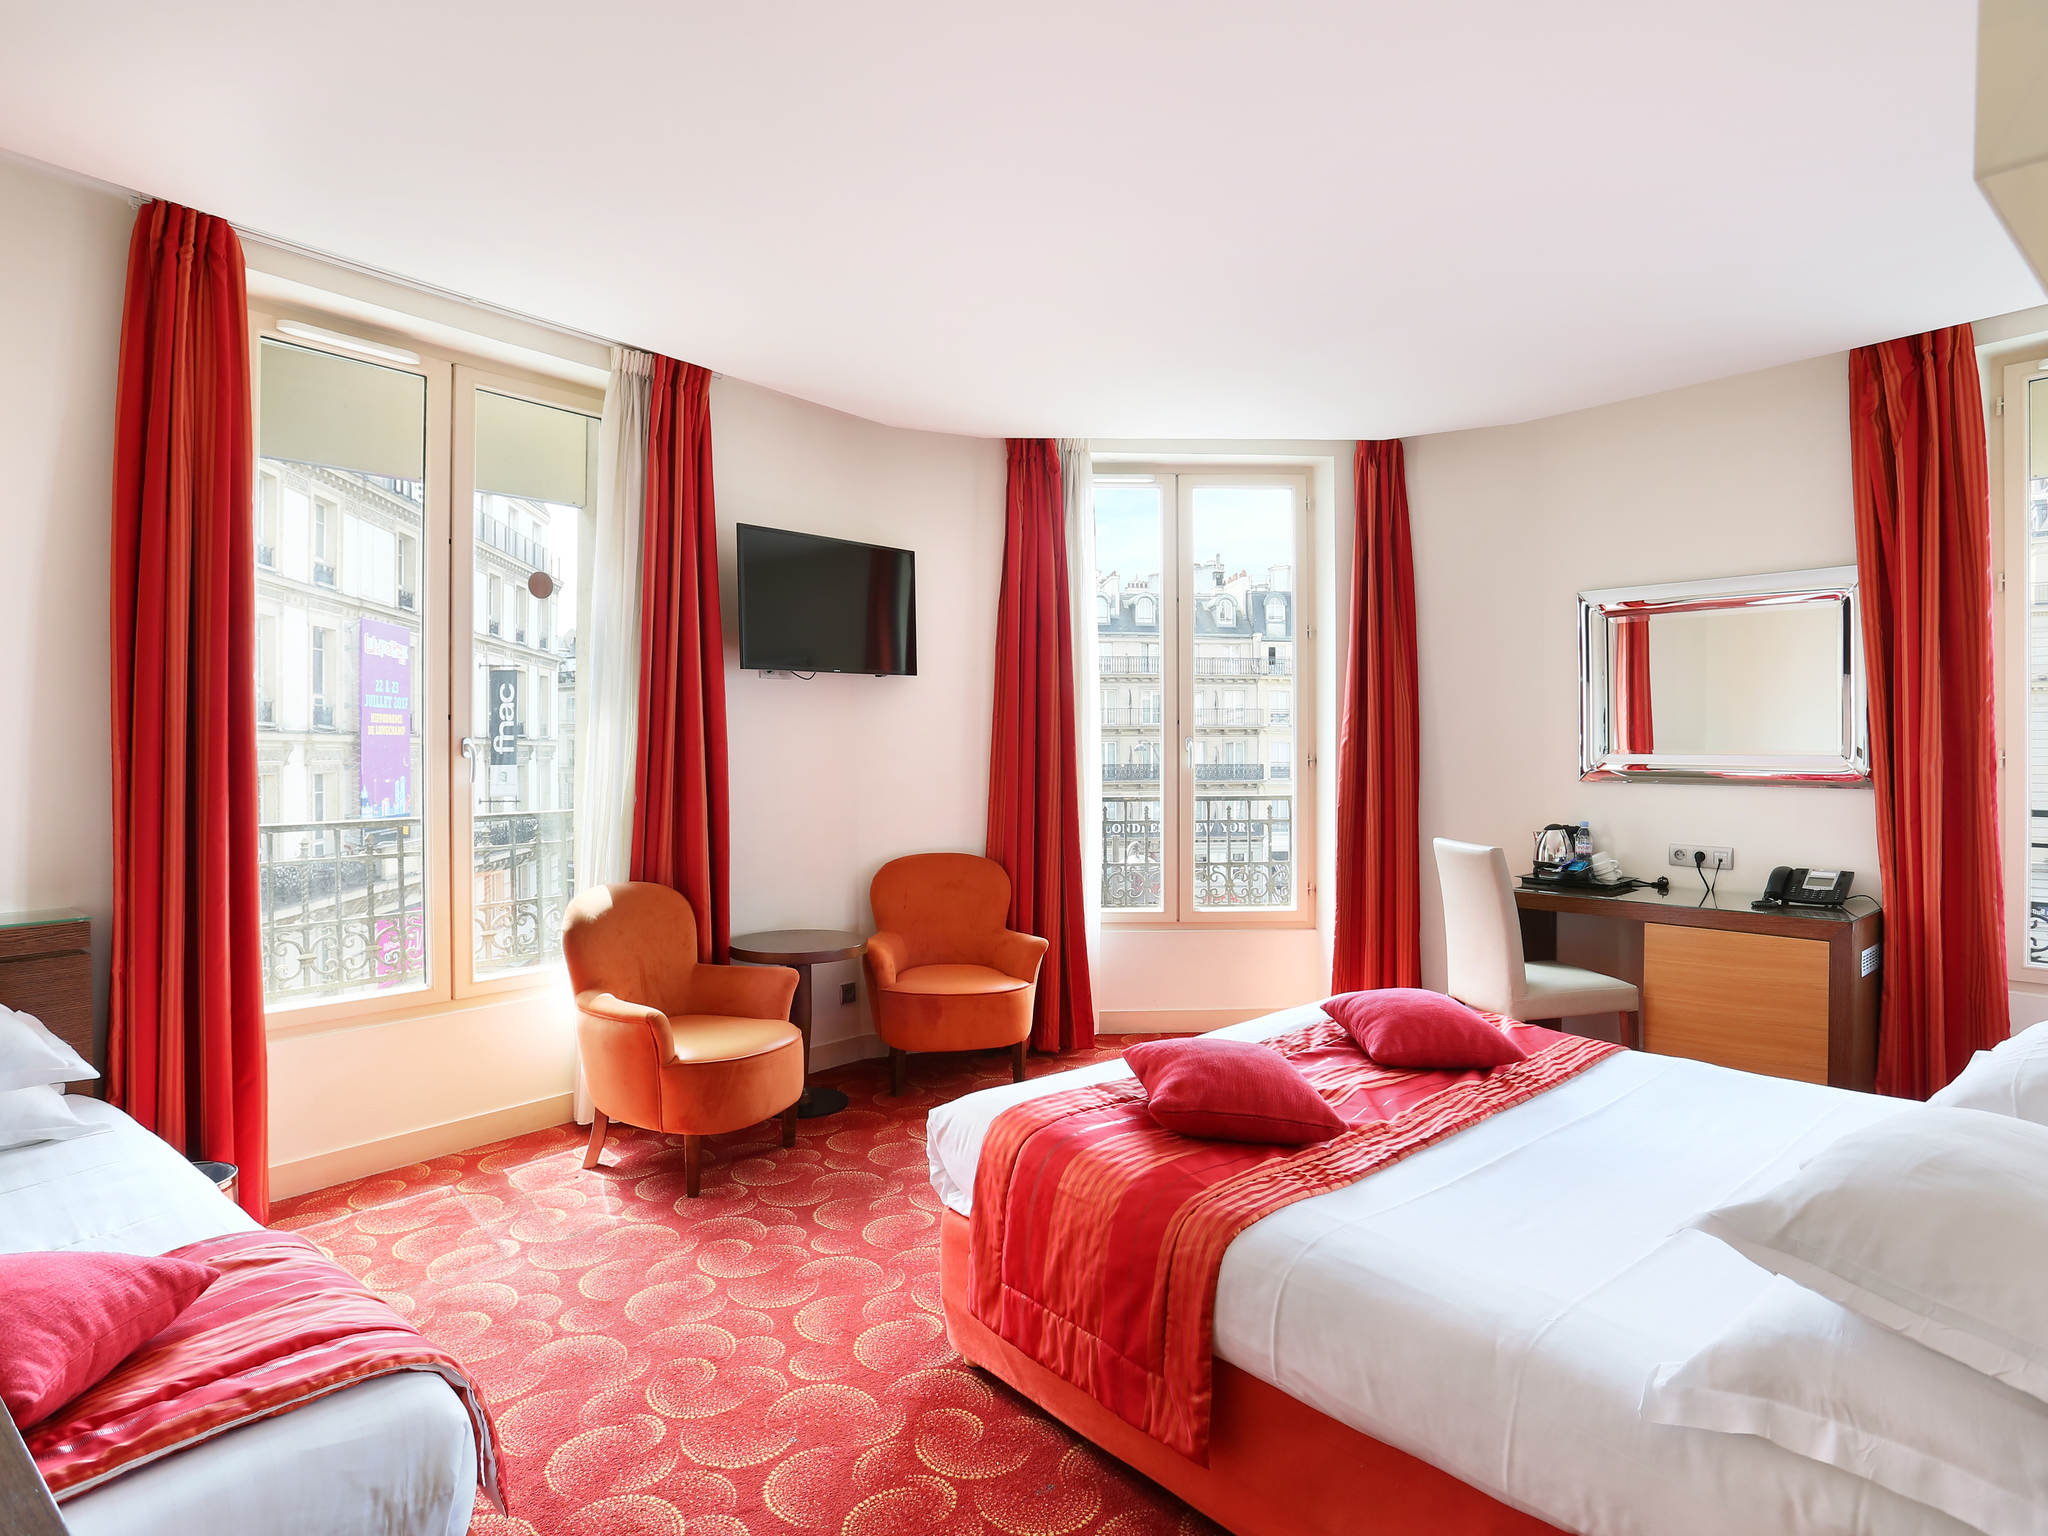 Hotel in paris le grand hotel de normandie for Boutique hotel normandie